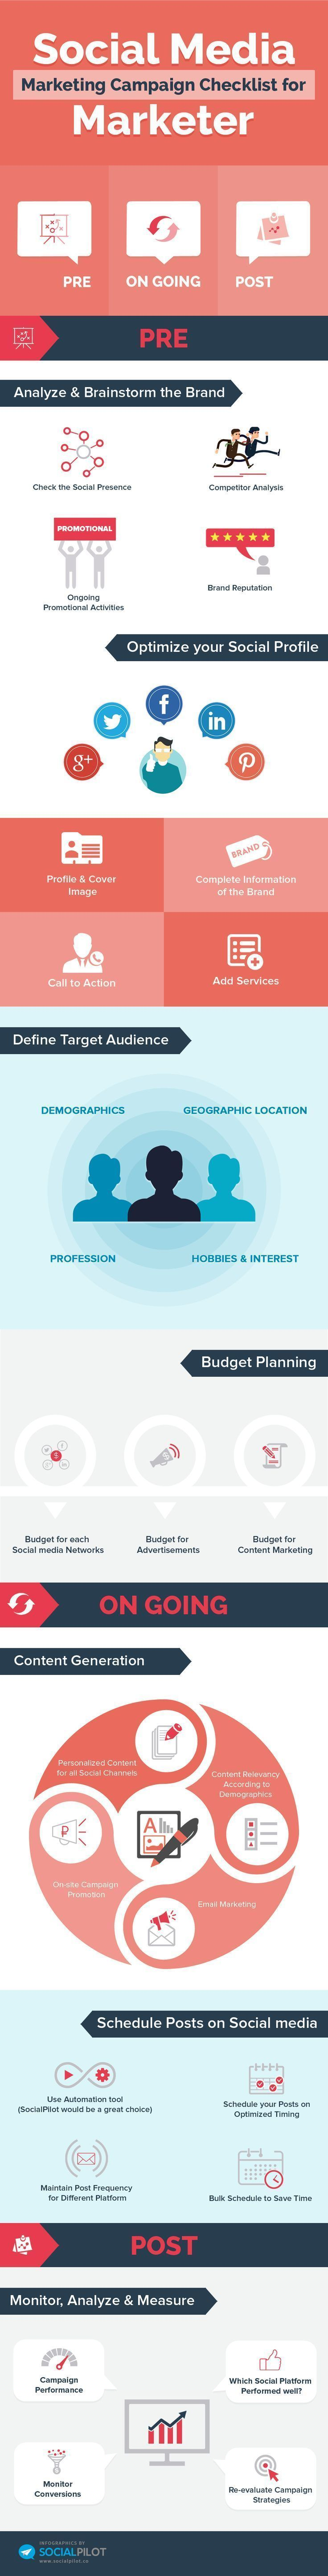 Social Media Marketing Campaign Checklist For Marketer – #Infographic